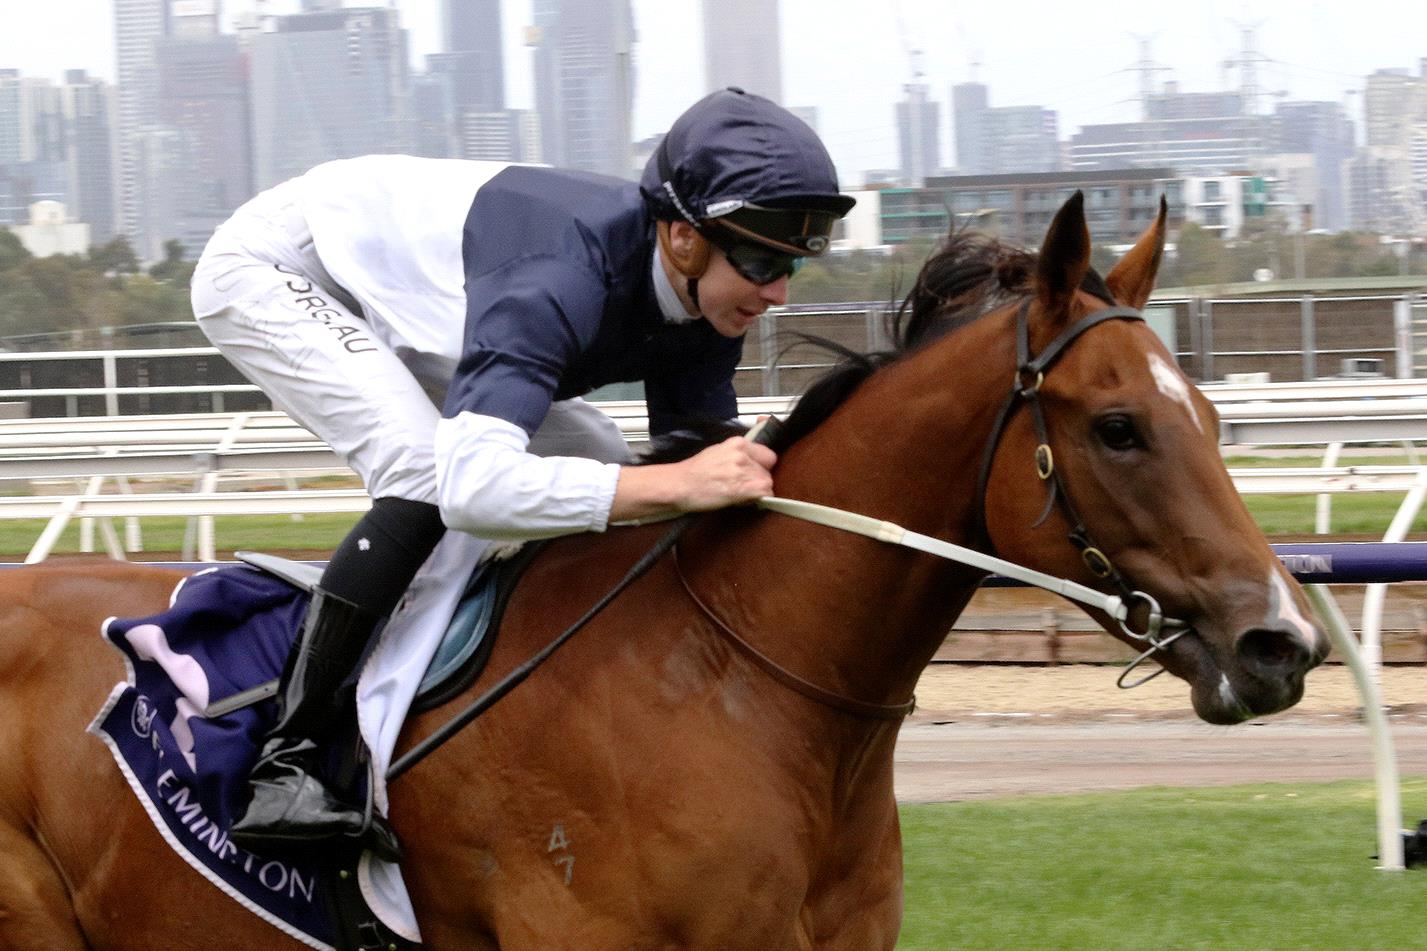 Jabali Ridge will have the chance to earn his way into the Blue Diamond.